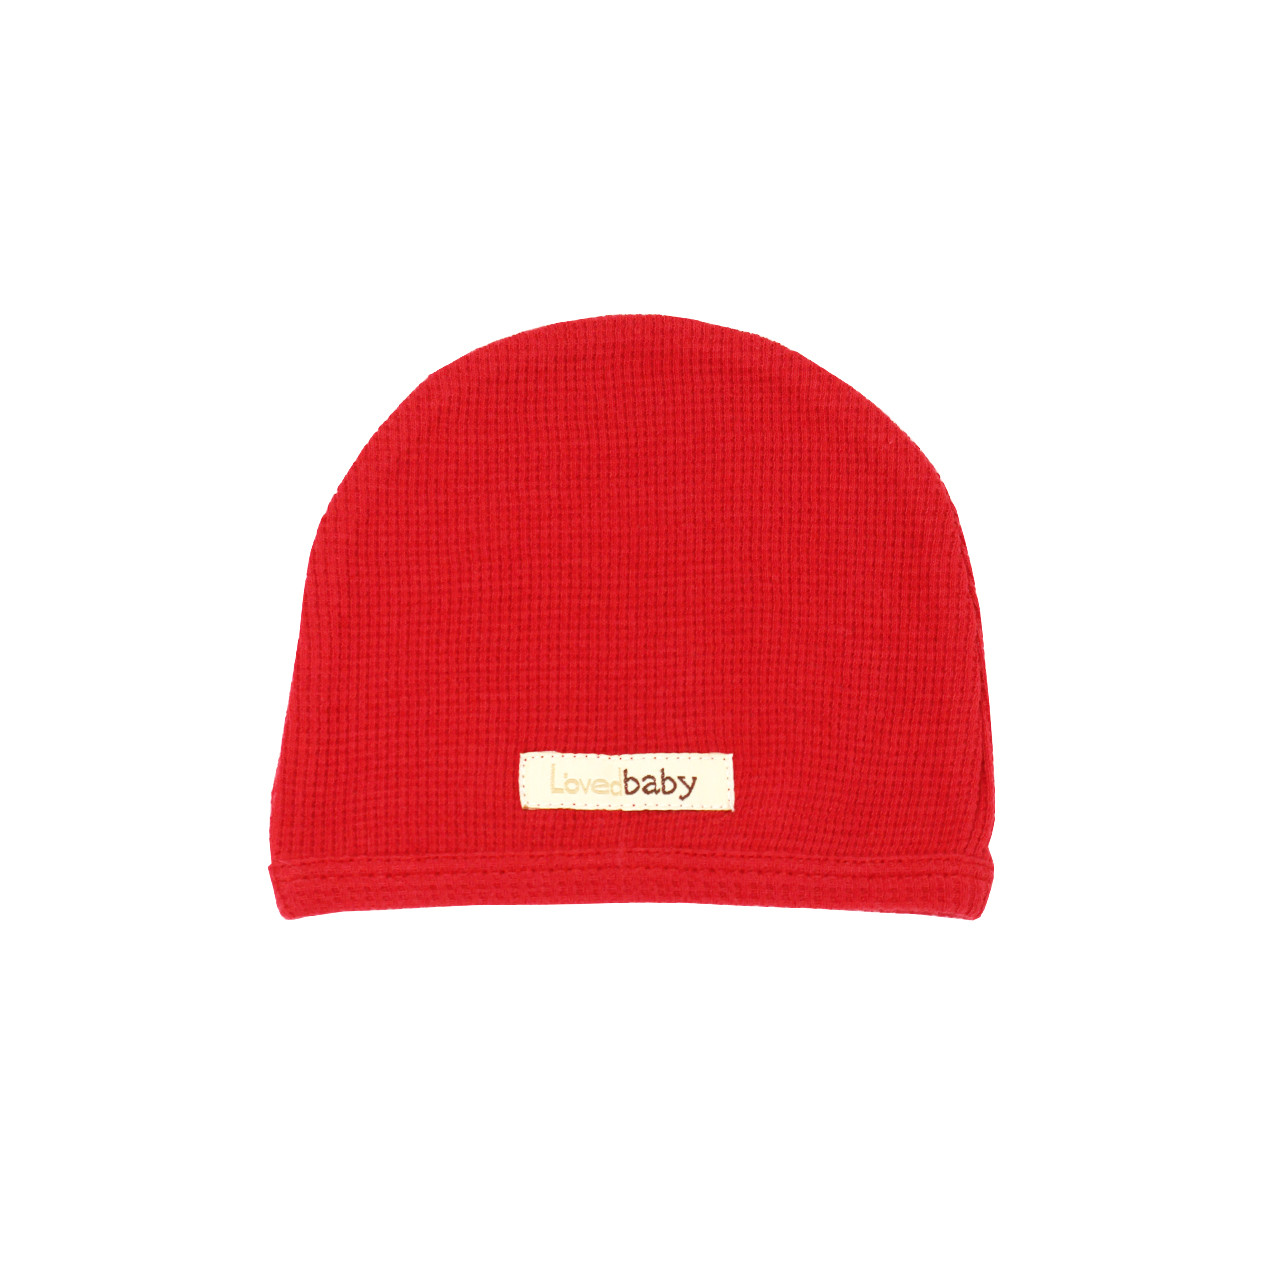 Organic Thermal Cute Cap in Ruby, Flat